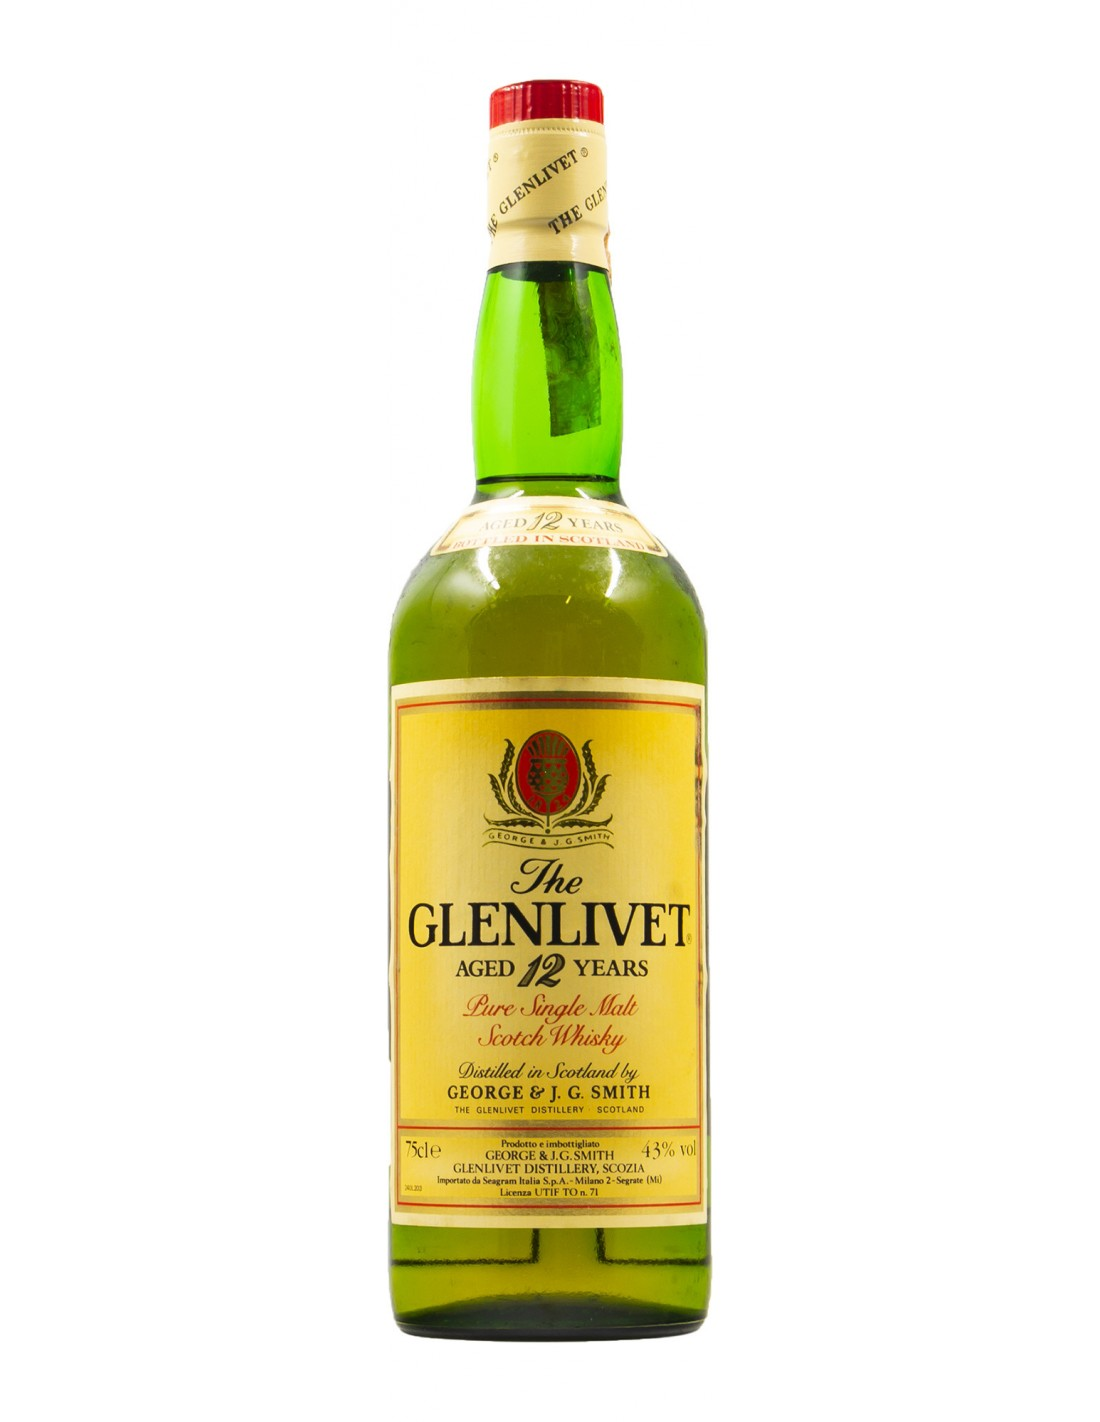 THE GLENLIVET AGED 12 YEARS OLD PURE SINGLE MALT SCOTCH WHISKY 0,75 CL 43° NV GEORGE & i.g. SMITH